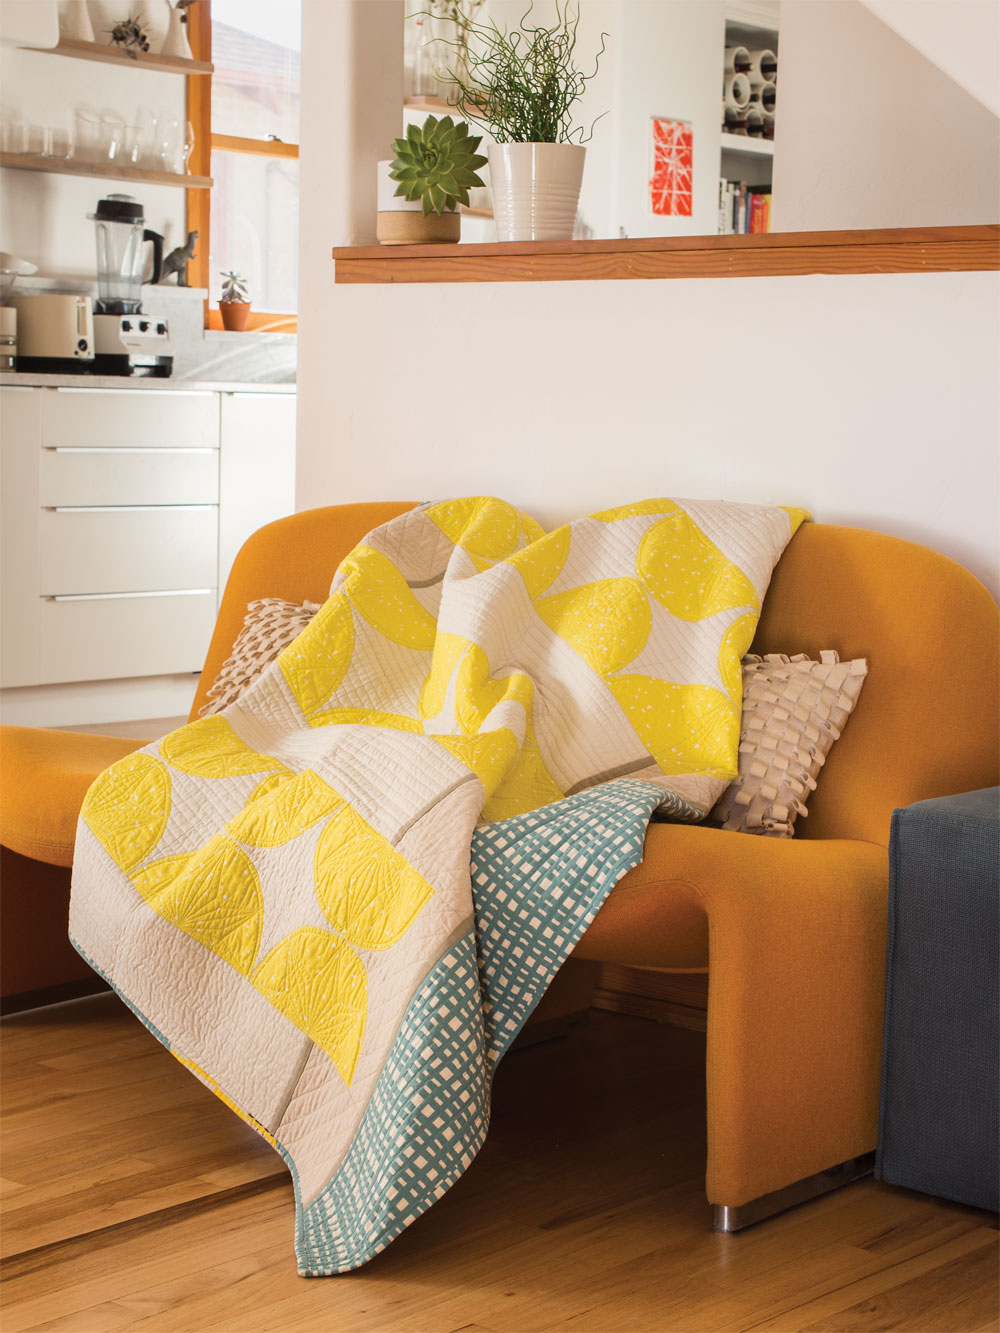 Lemon Drops Quilt by Heather Black